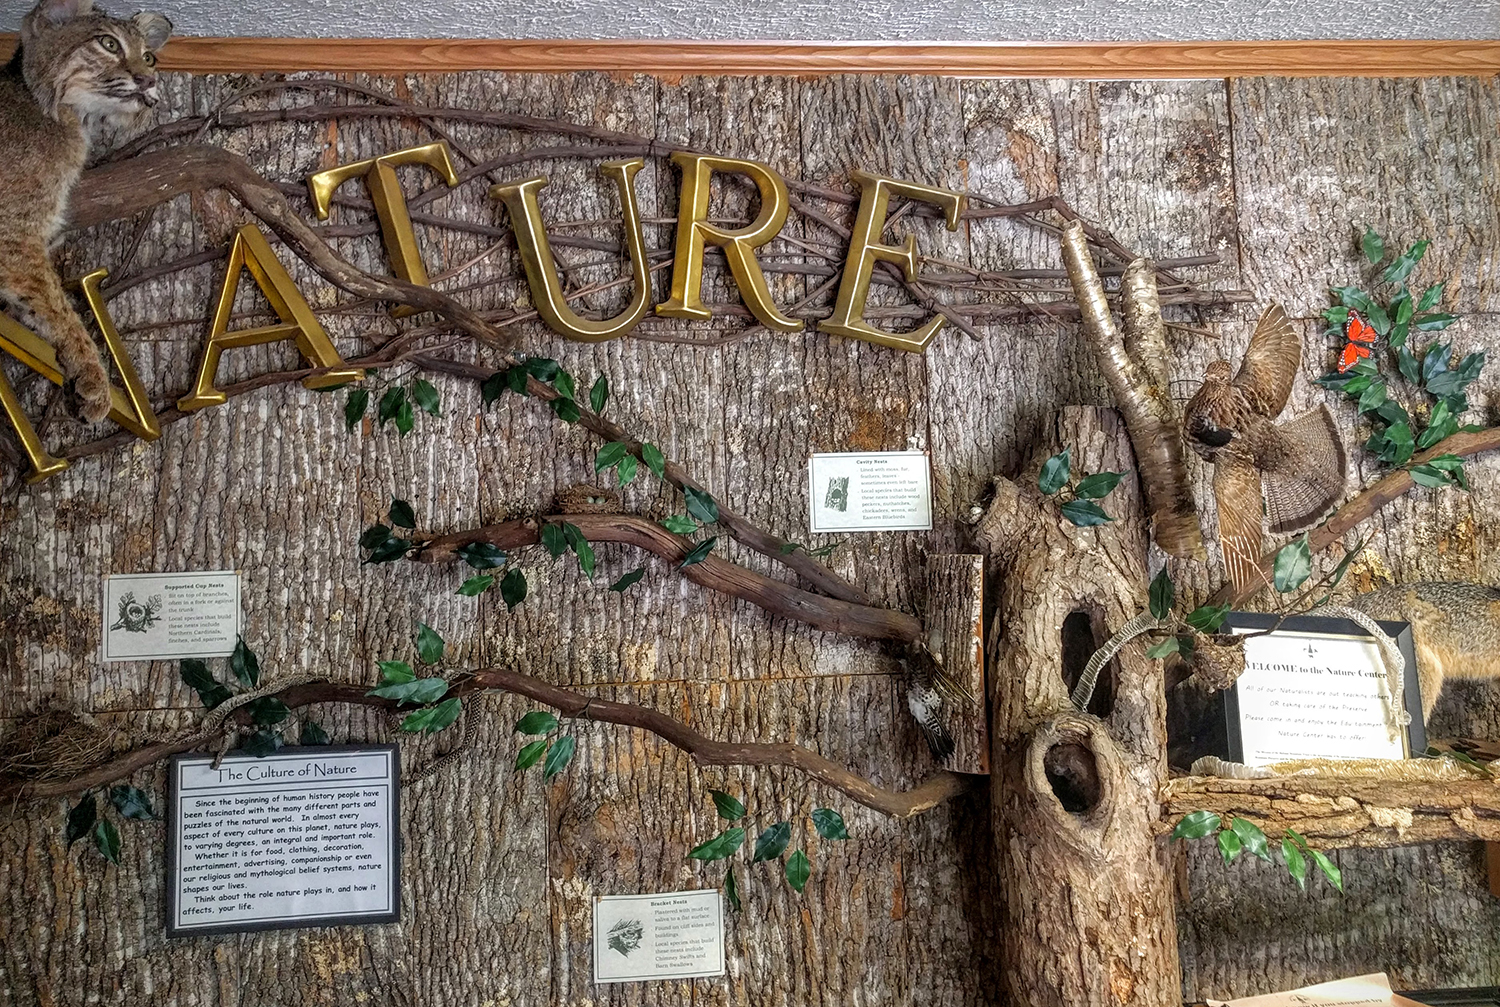 Balsam Mountain Trust Nature Center